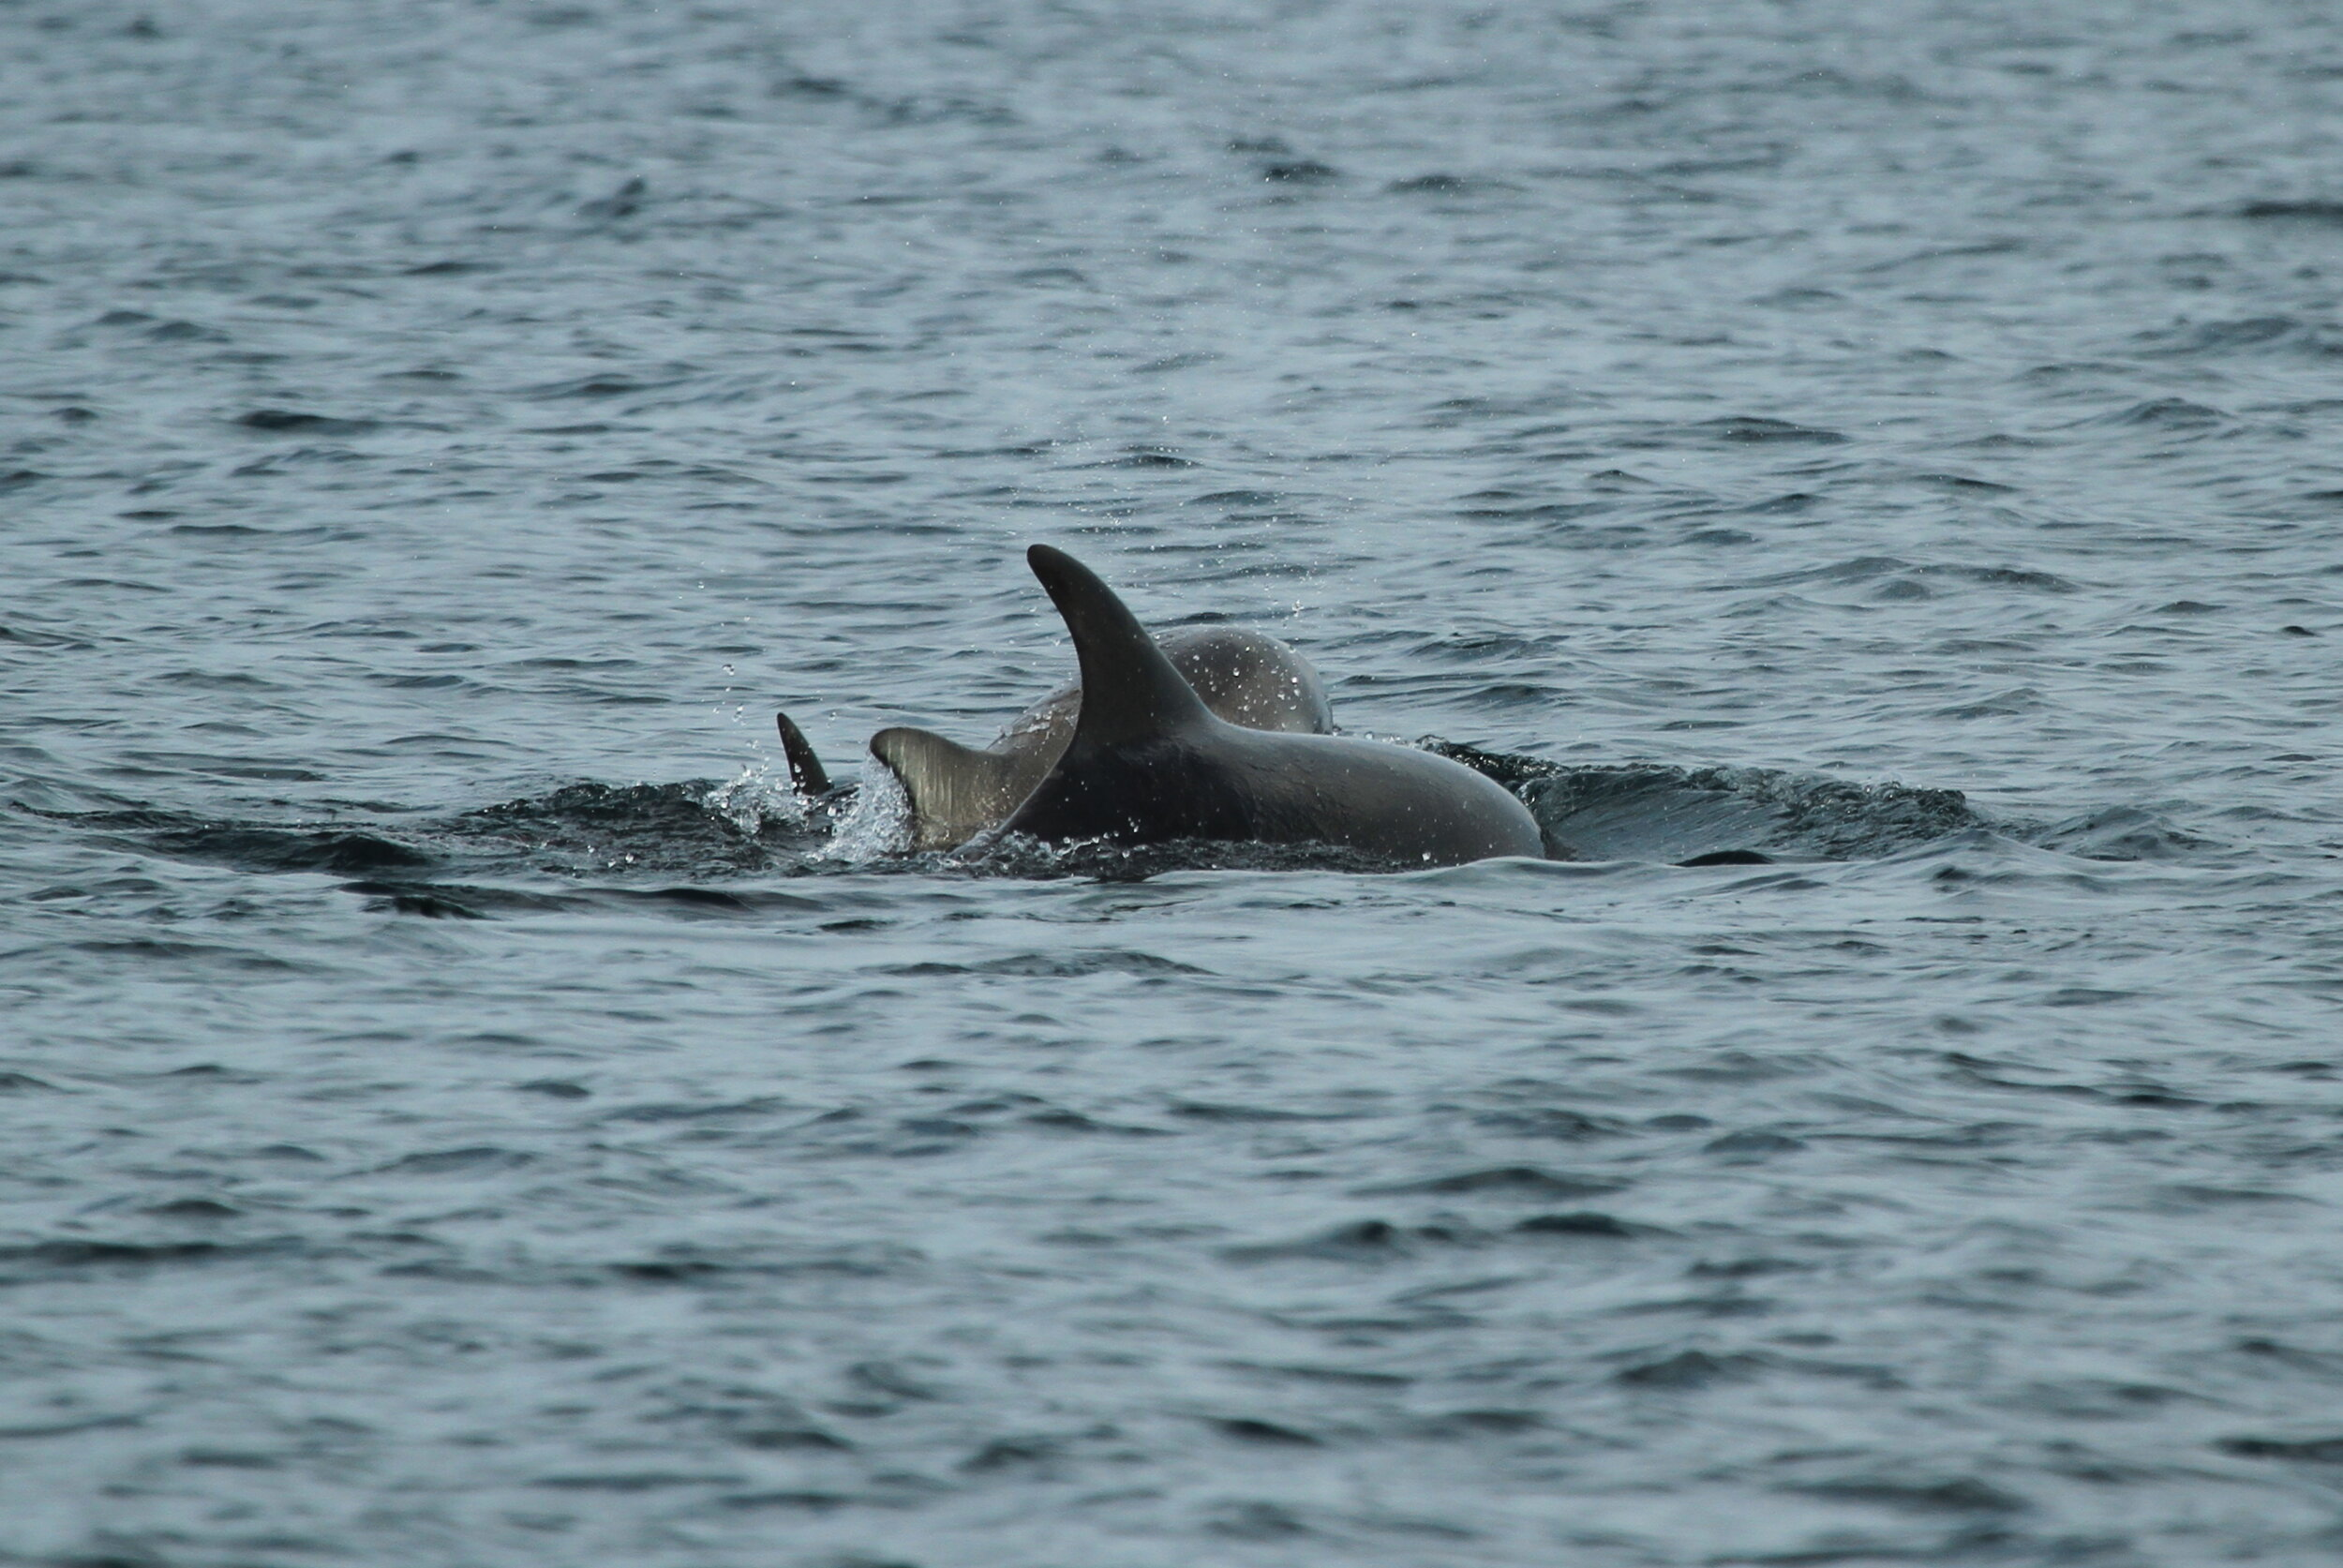 Bottlenose Dolphins are seen regularly around our island.